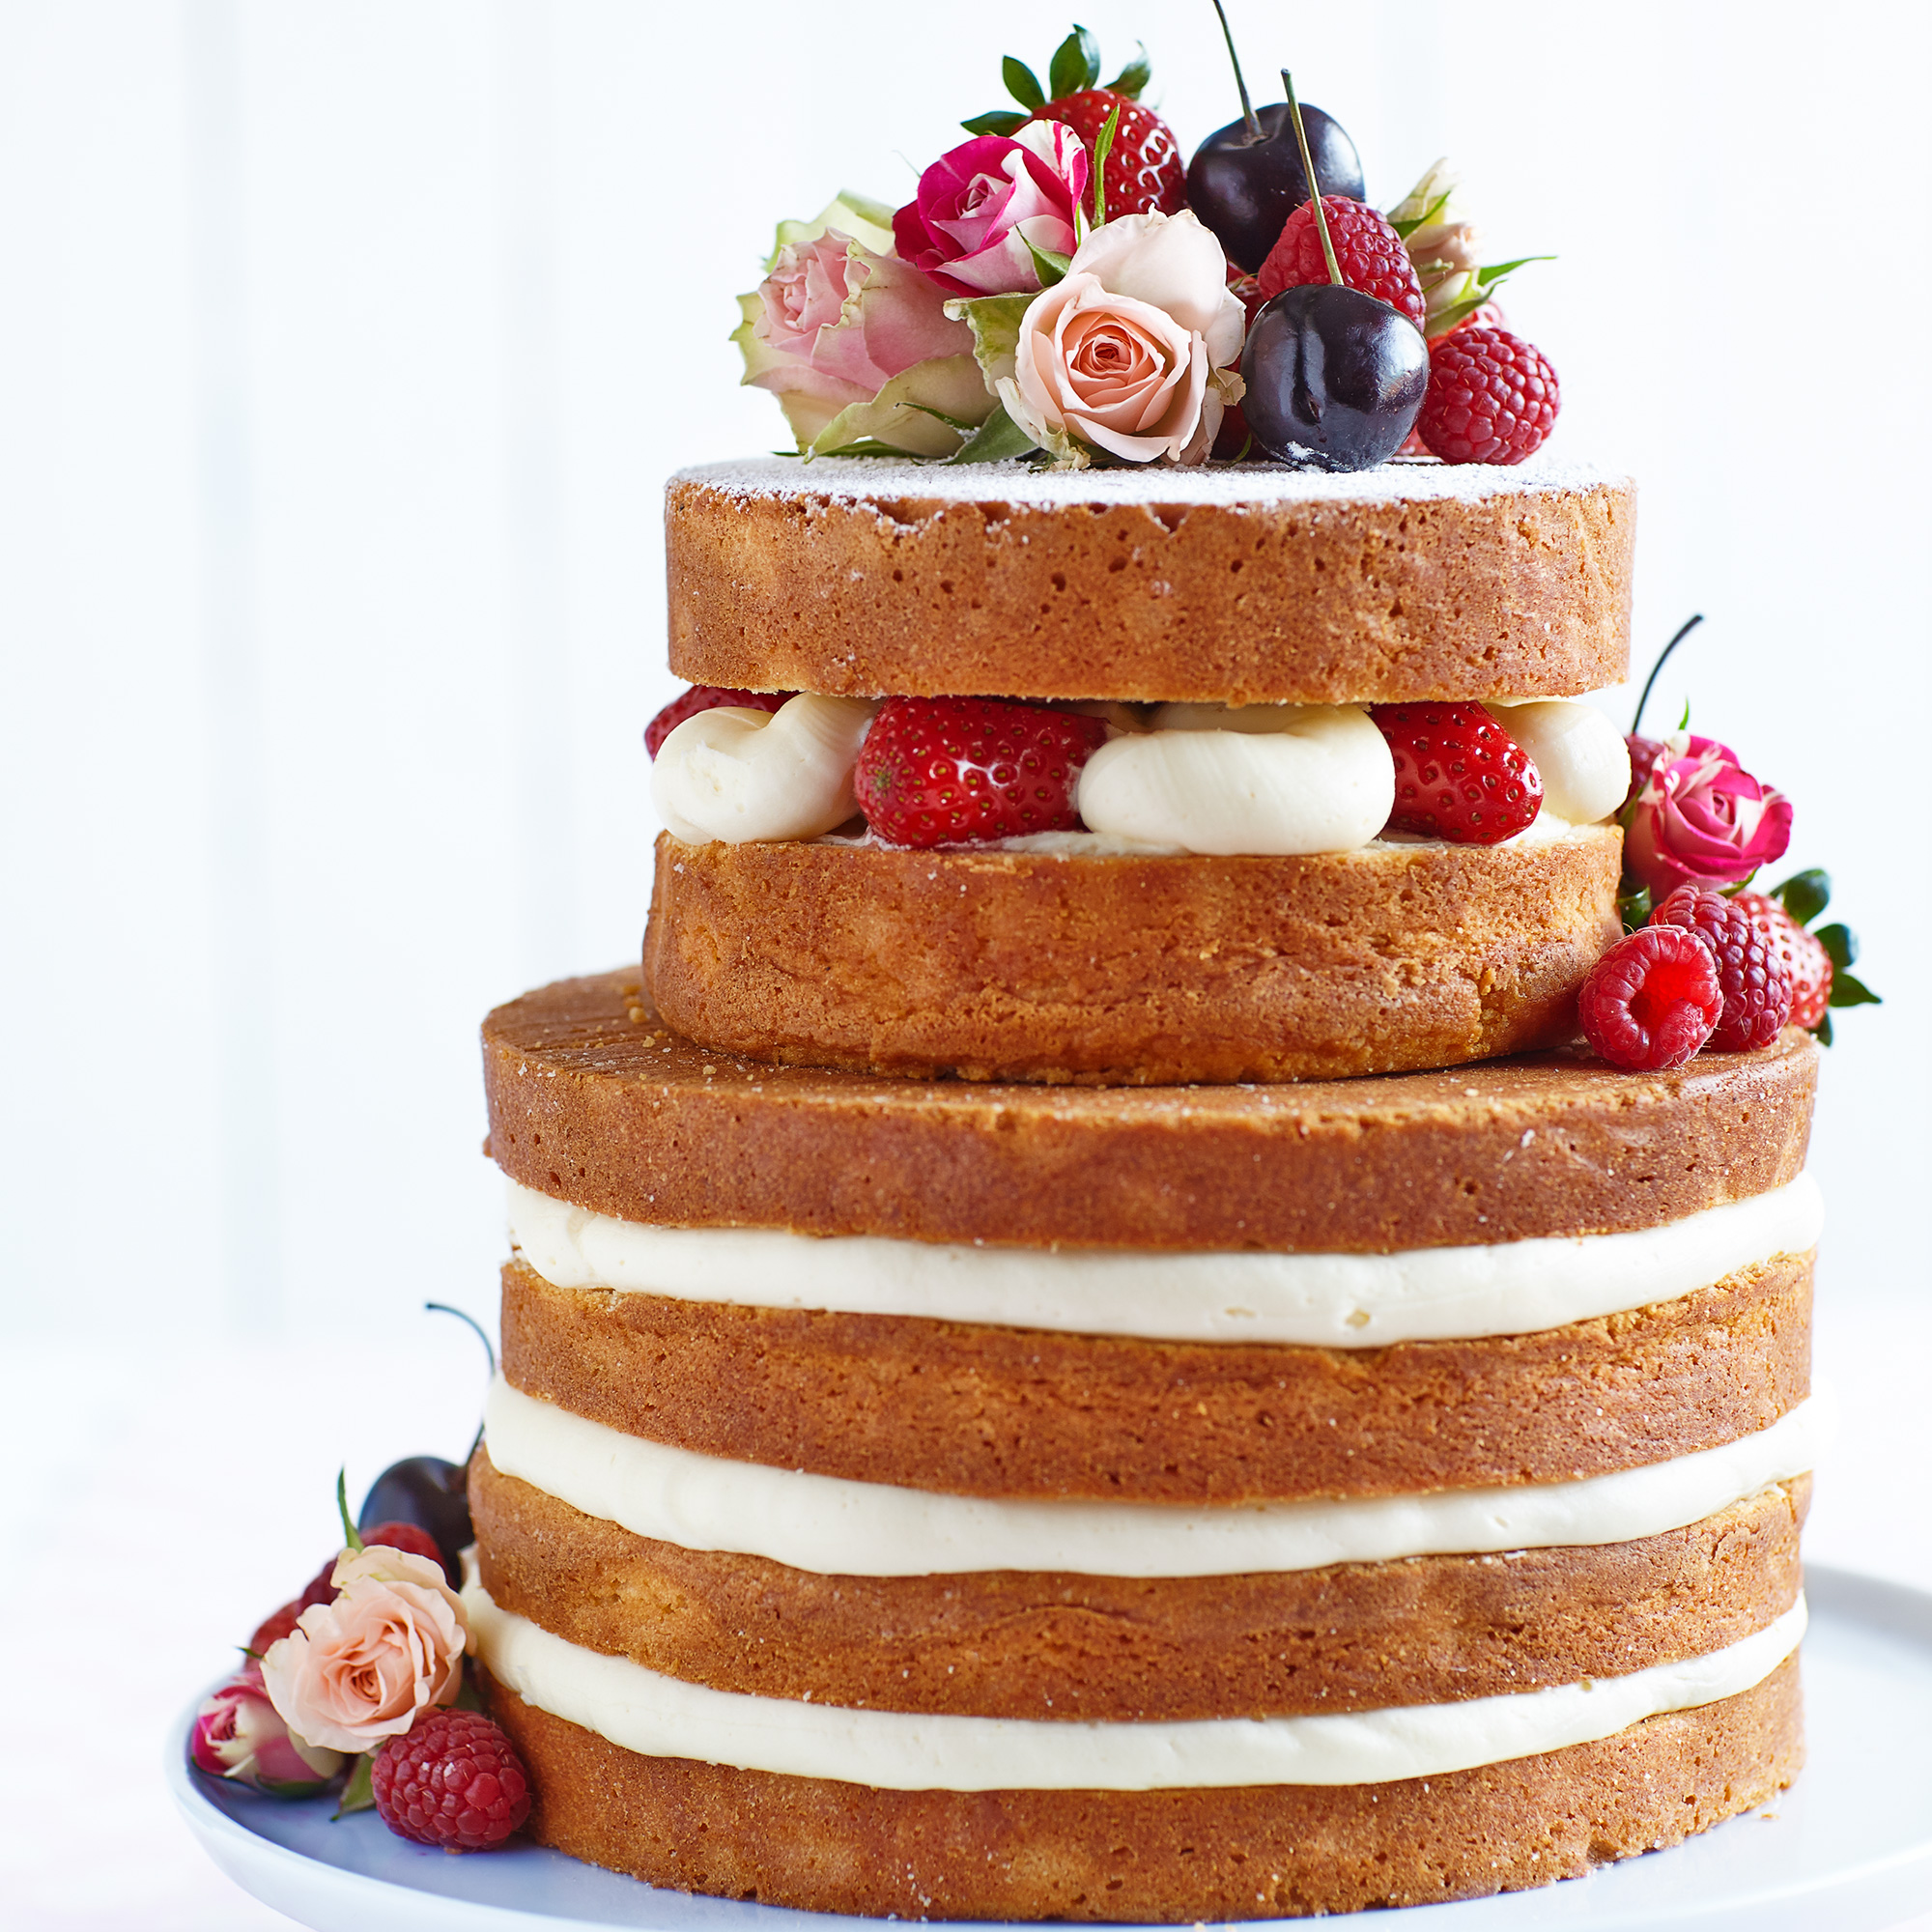 Wedding Cake Recipe.Wedding Cake Recipes Woman Home